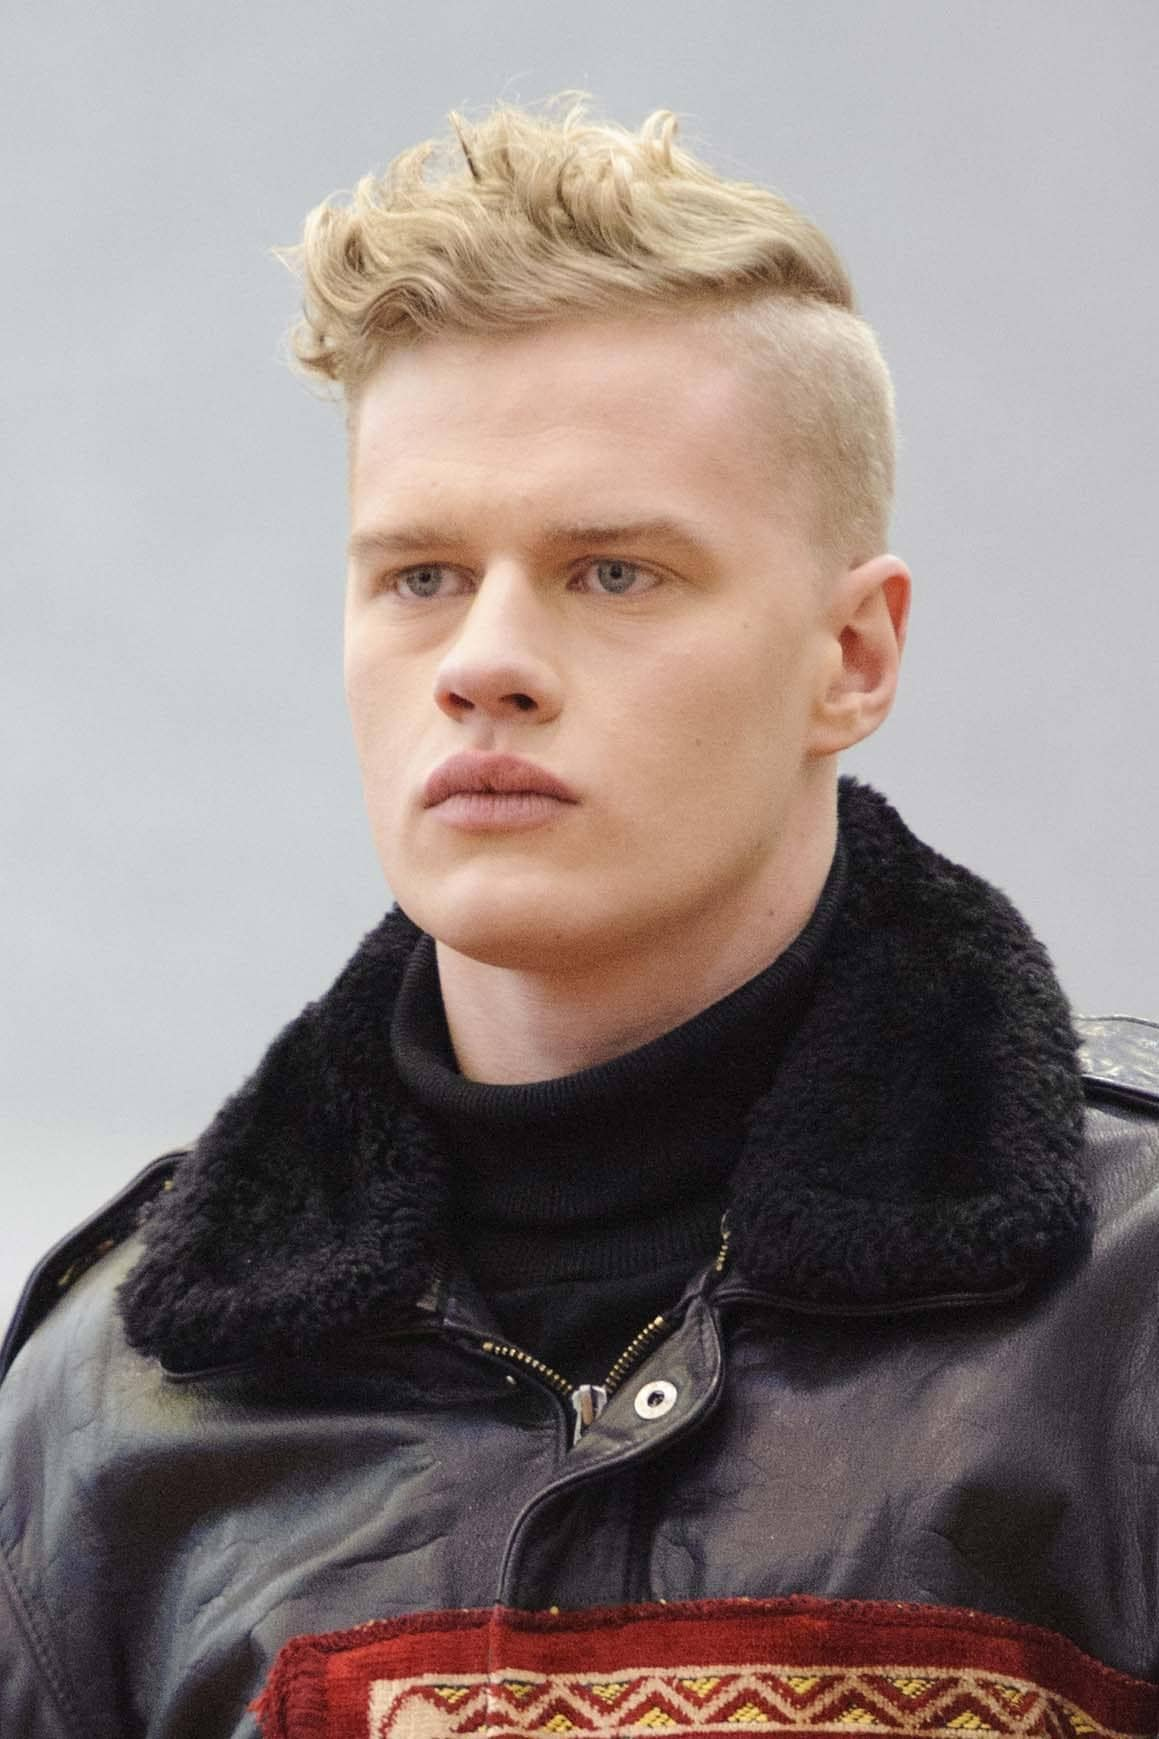 How To Style Fade Haircuts 4 Quick And Easy Updates To Elevate Your Cut